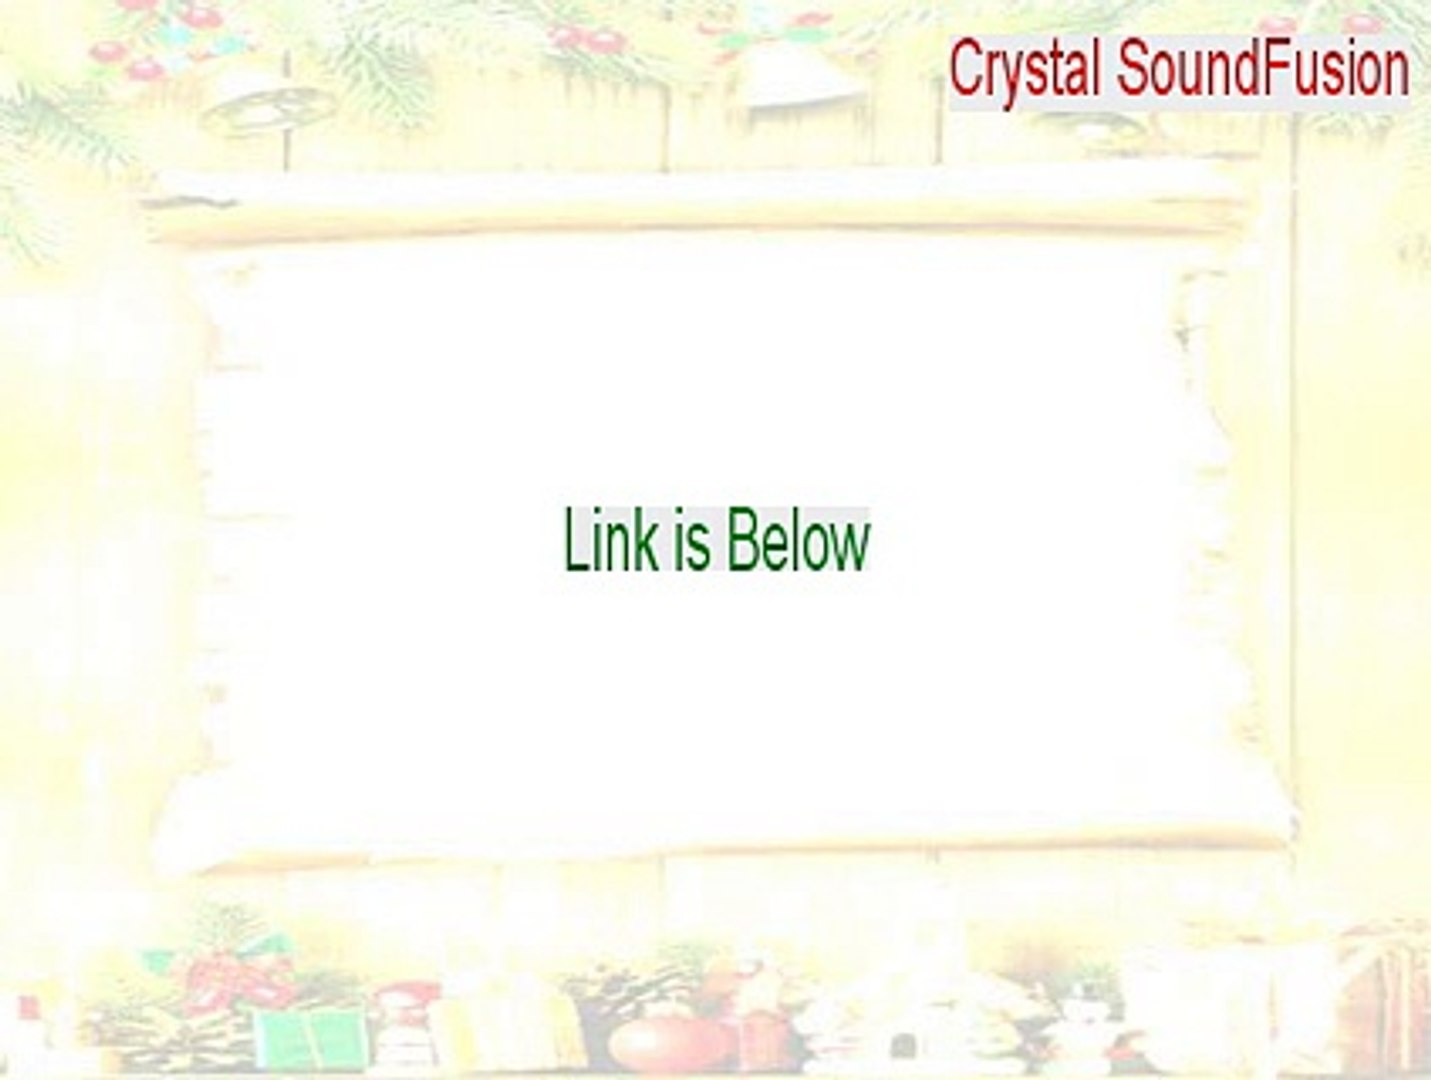 Crystal cs4281 cm ep driver windows 7 free download